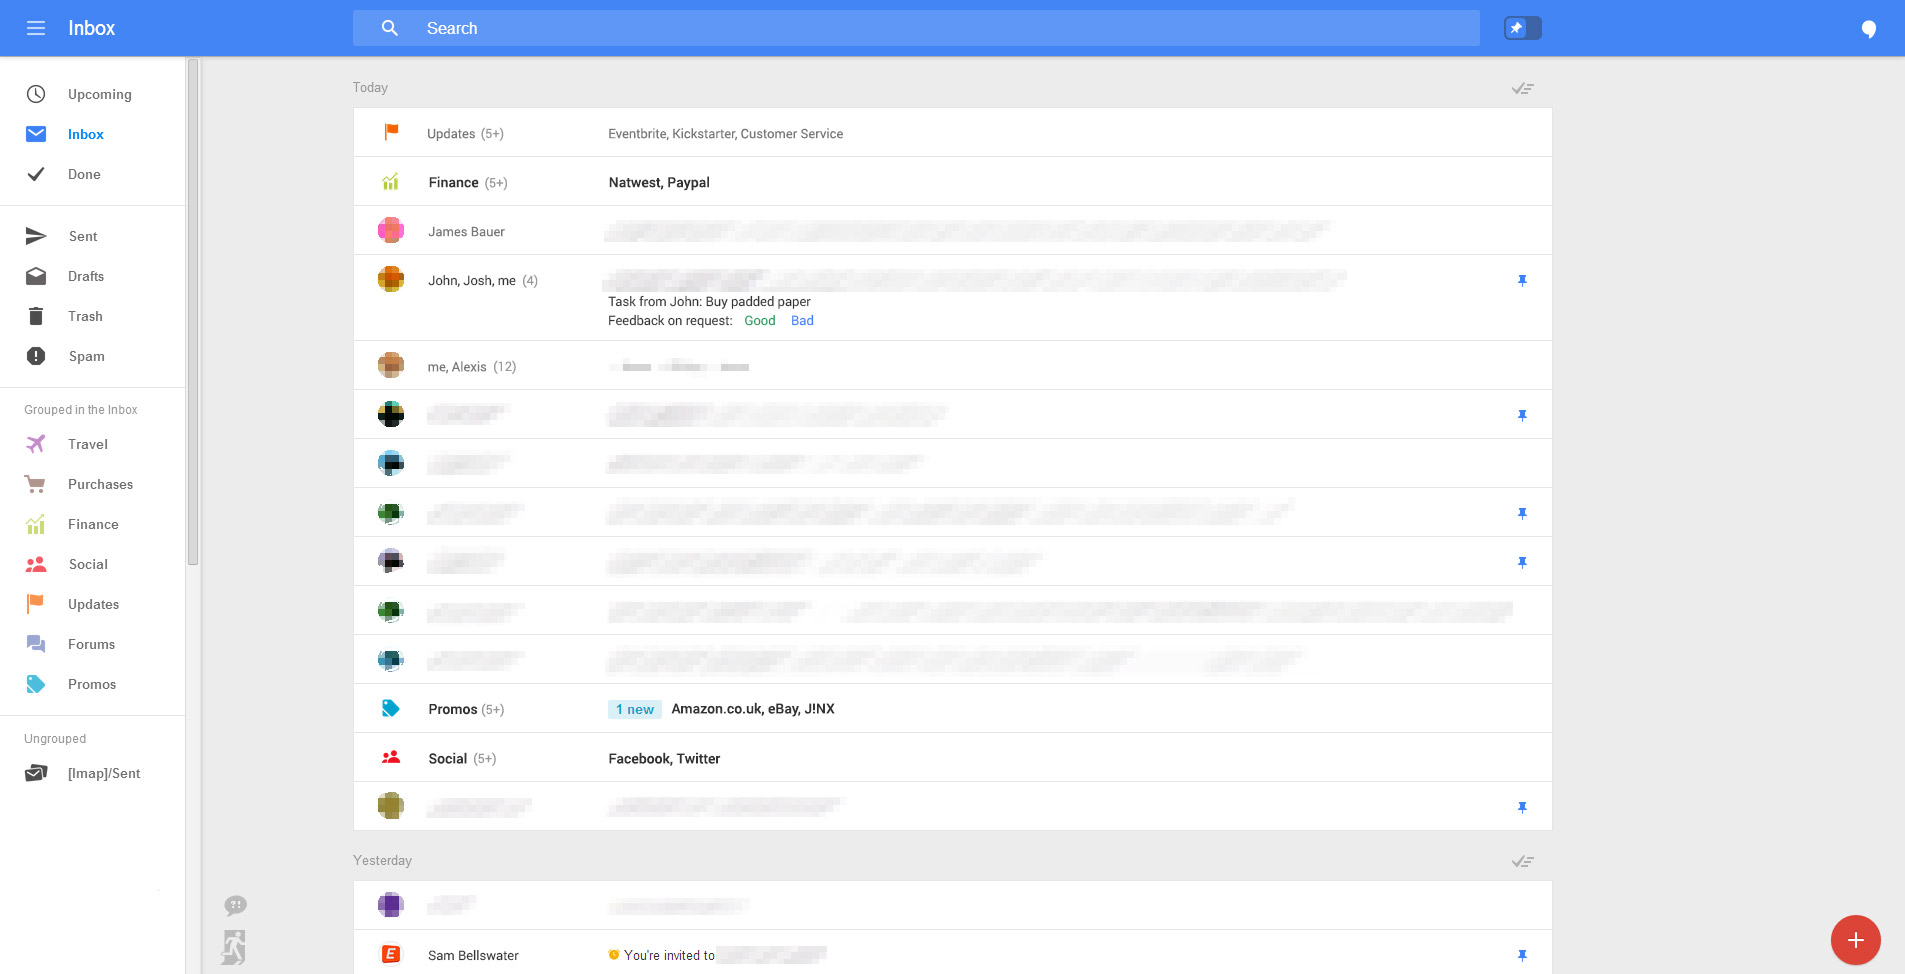 Google may be testing new User Interface for Gmail website